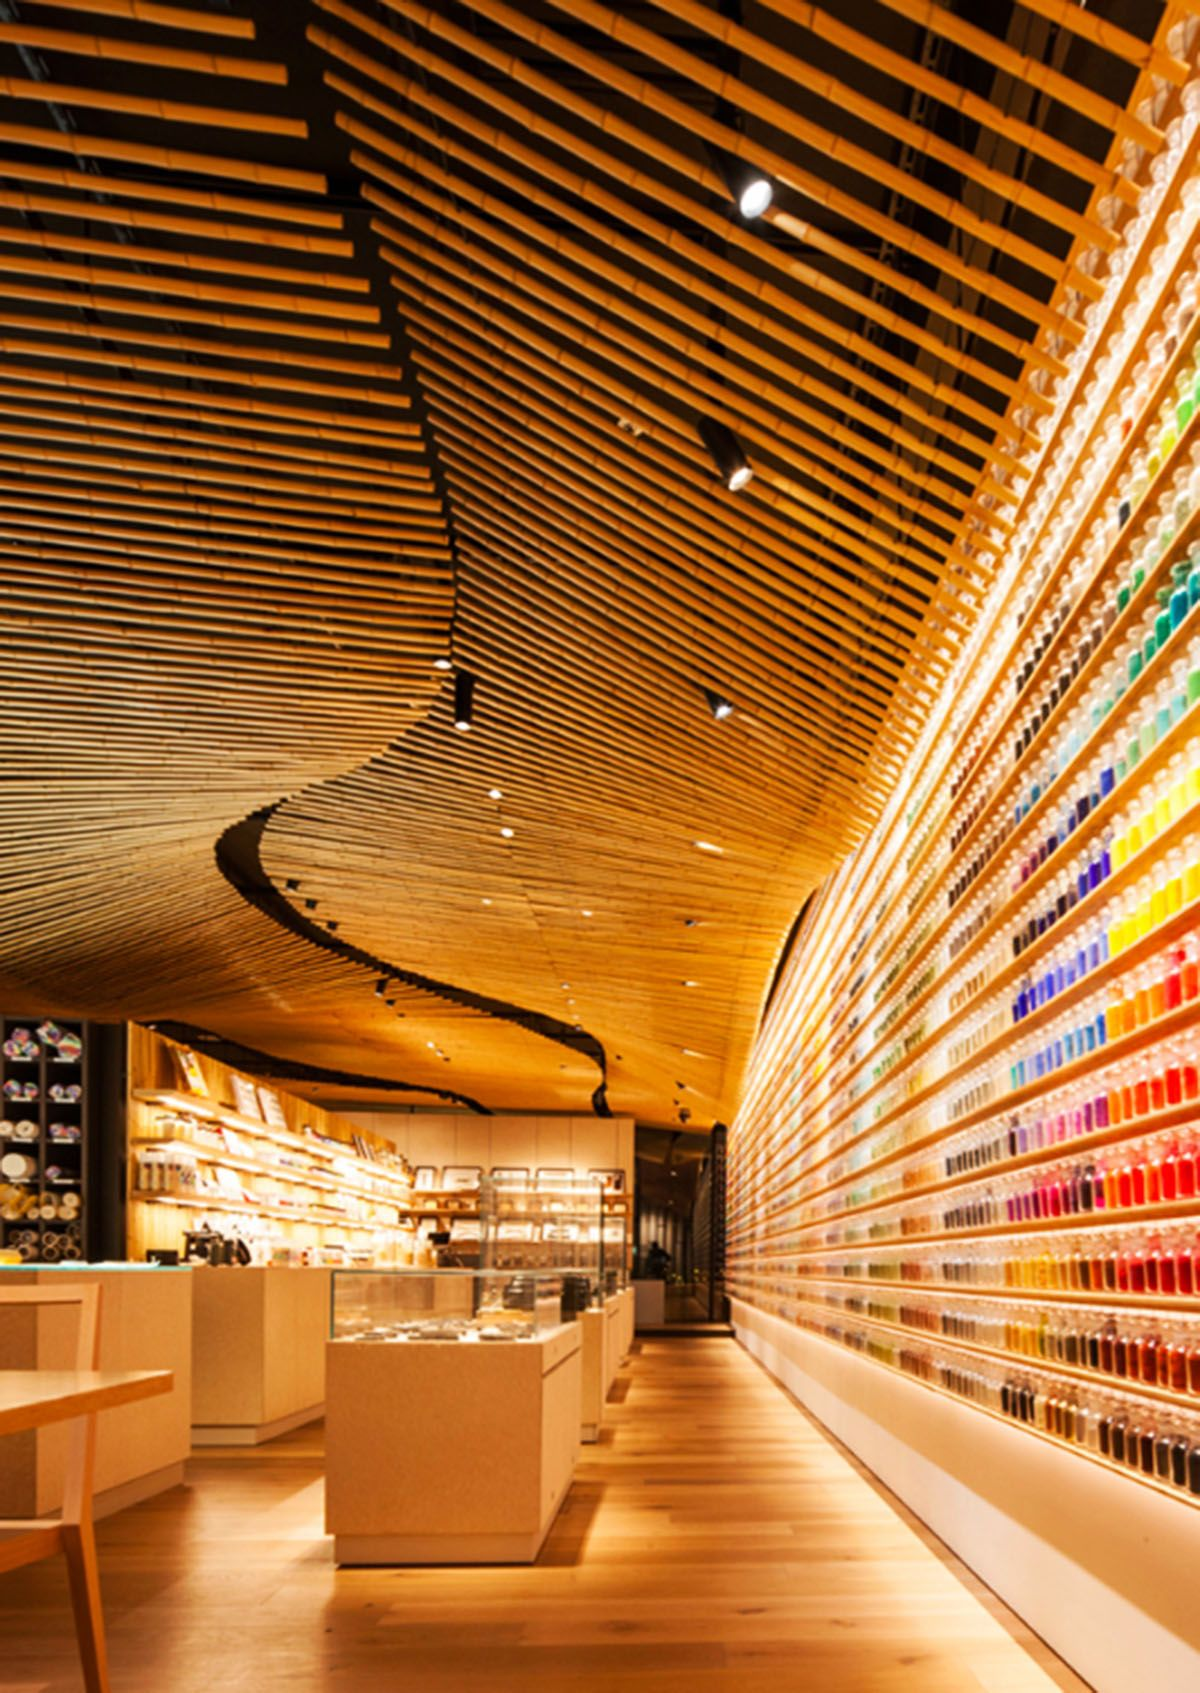 kengo kuma designed a wave of bamboo for the interior of 'pigment